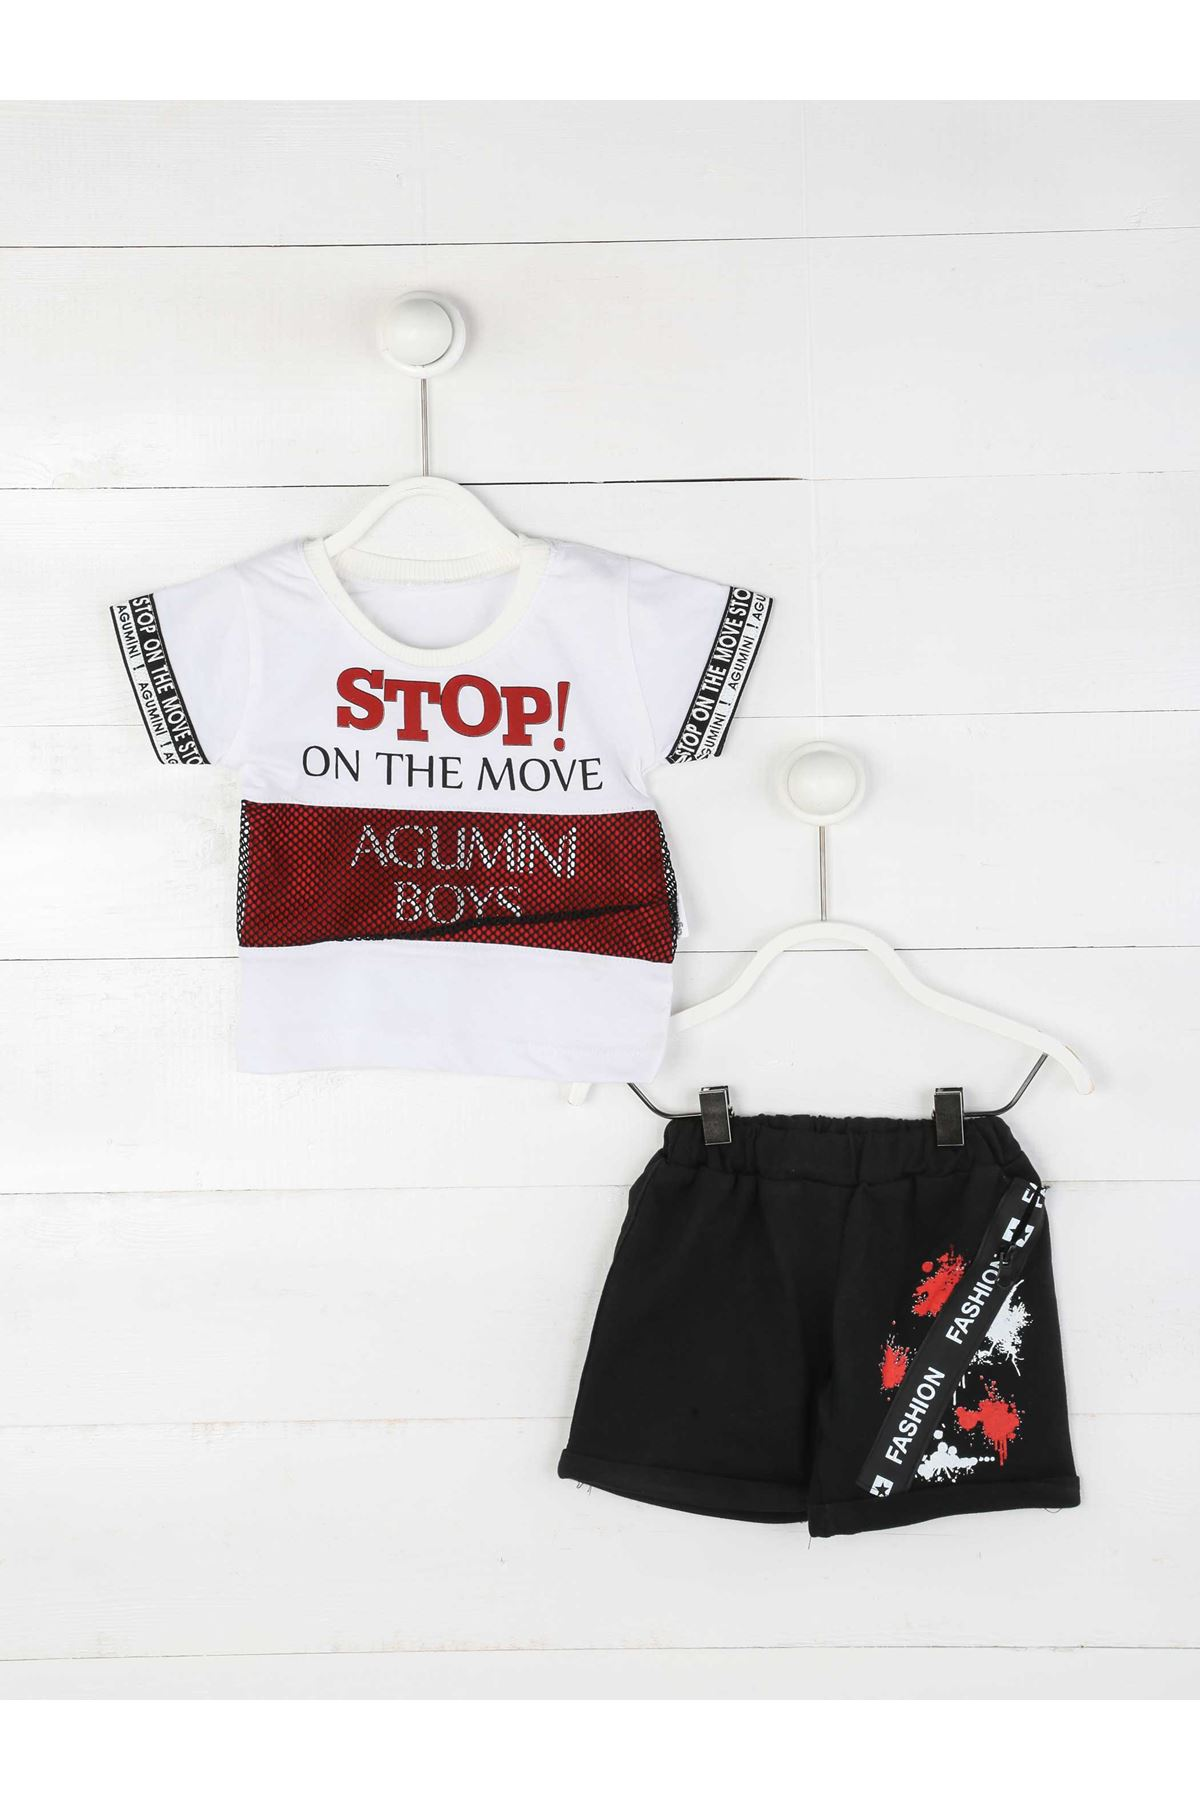 Baby Boy Claret Red Bottom Top Summer Gentleman Babies Cute Casual Casual Cotton Clothing Sets Models and Types